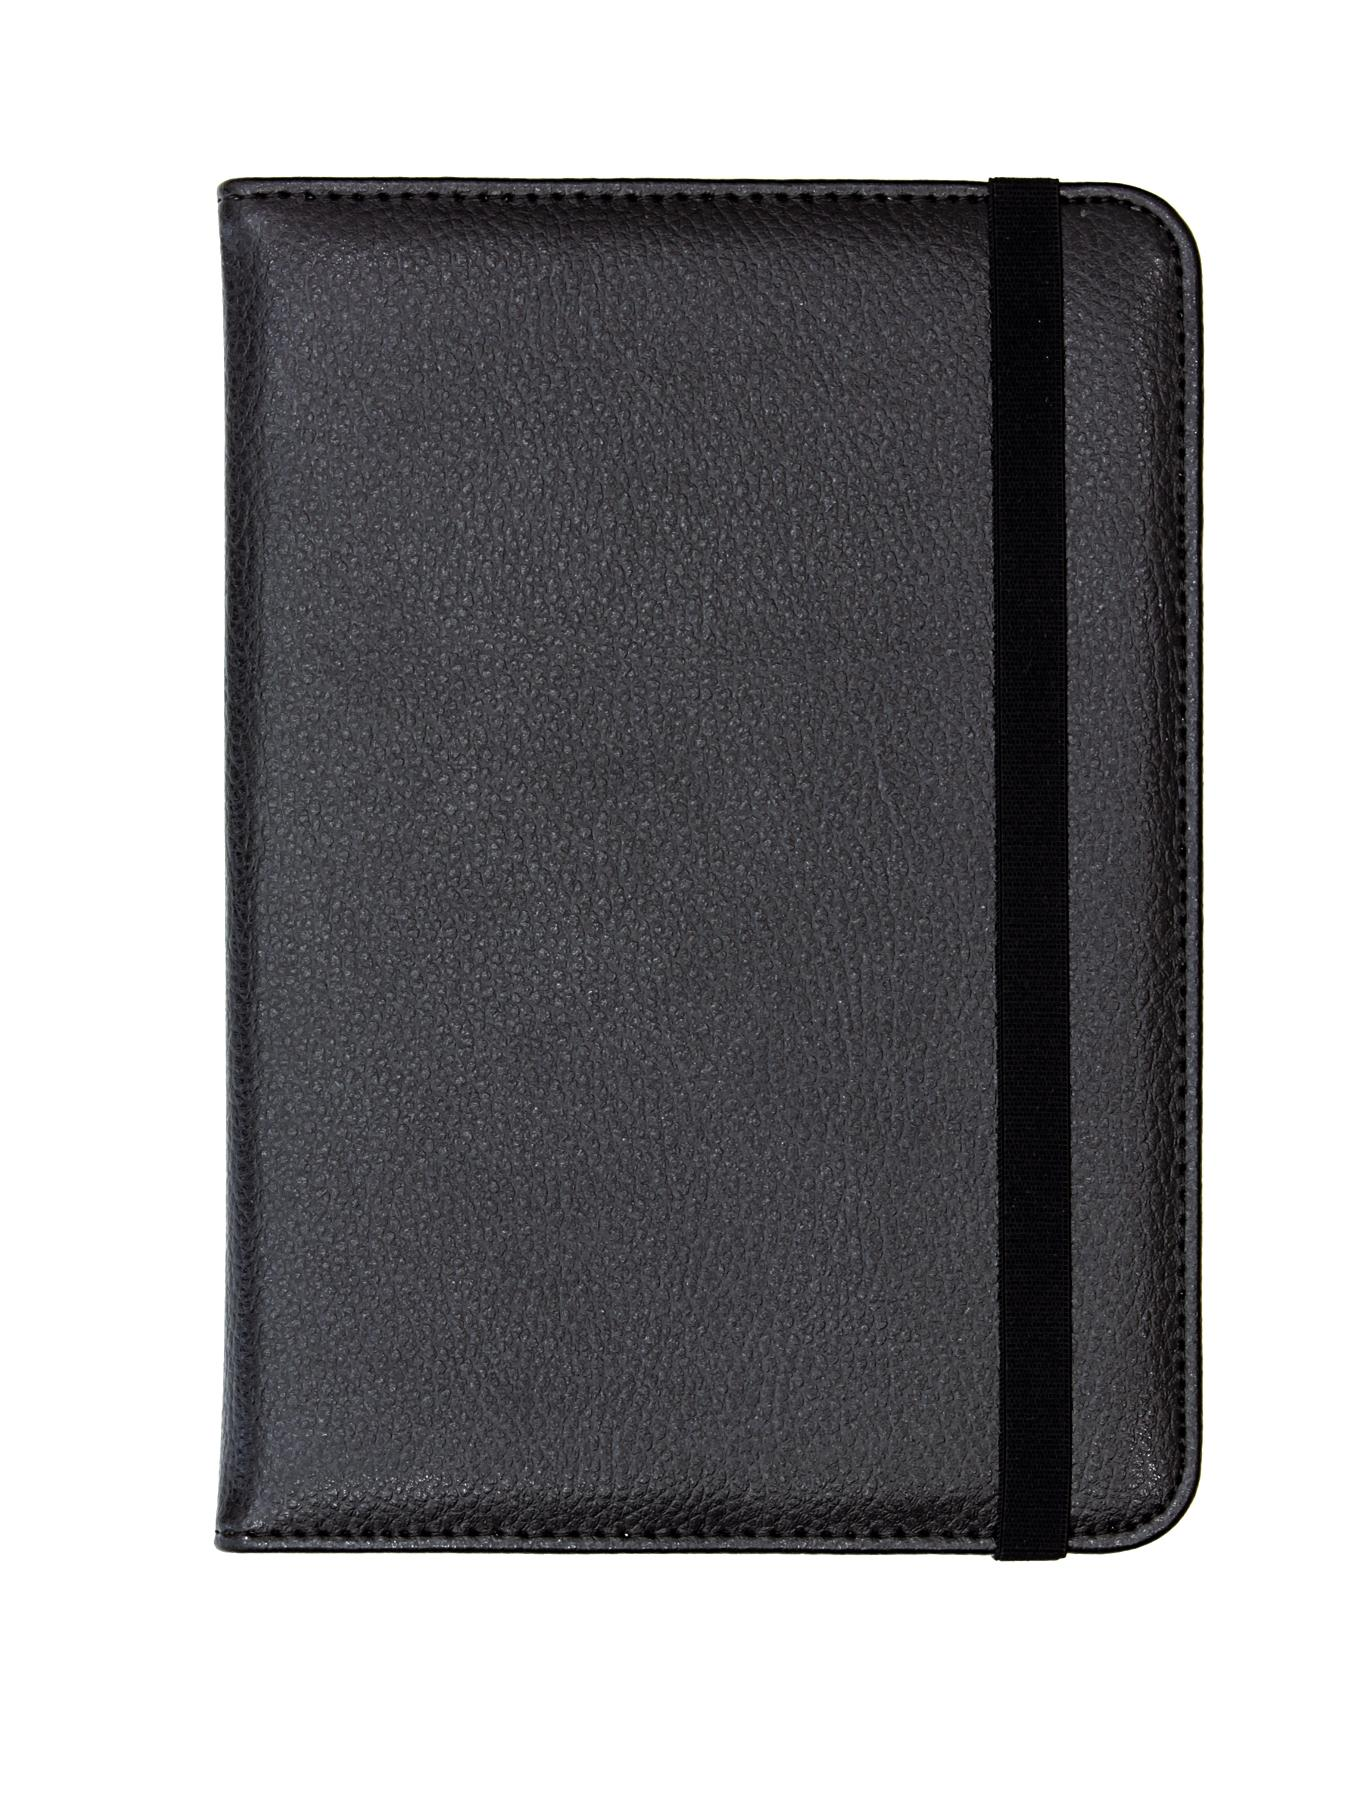 Case It Universal 7 inch Tablet Case - Black